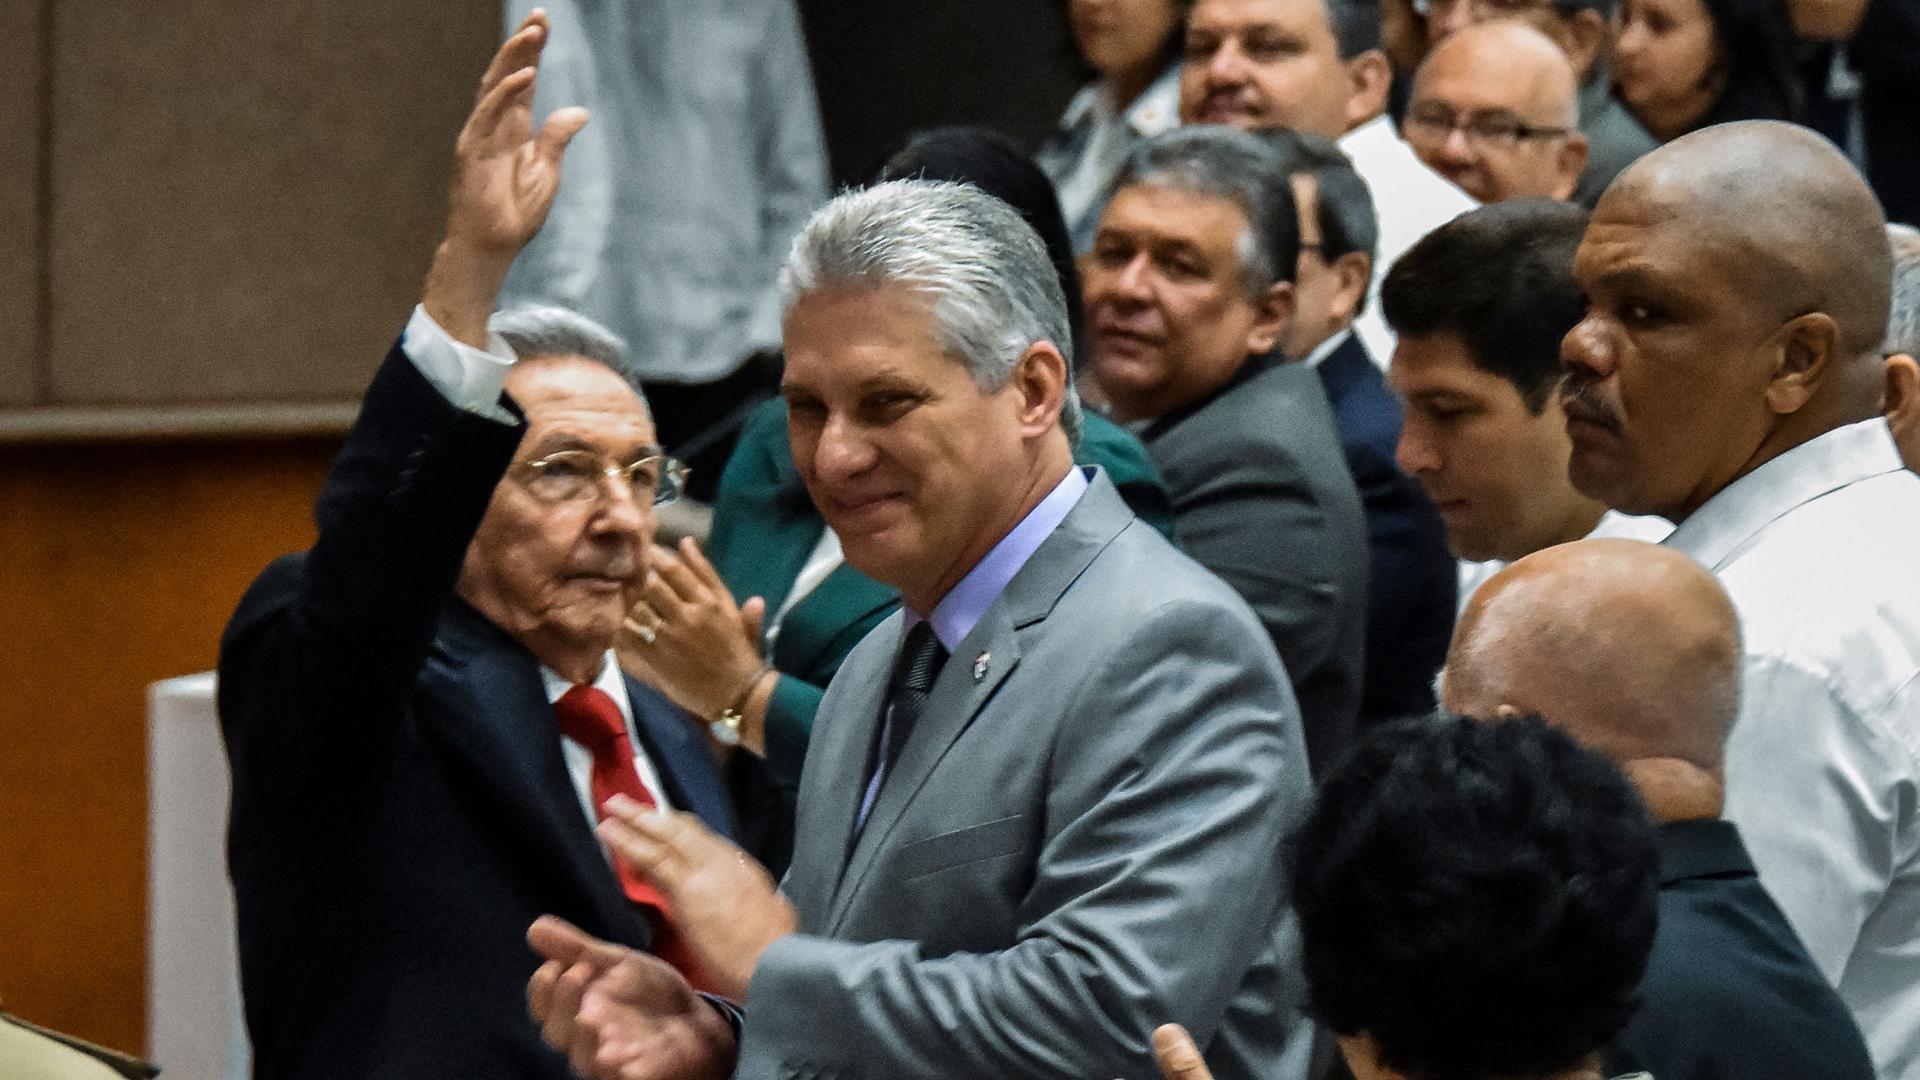 Cuban President Raul Castro (left) waves next to First Vice-President Miguel Diaz-Canel (center) during a National Assembly session that will select Cuba's Council of State ahead of the naming of a new president, in Havana on April 18, 2018. (Credit: STR/AFP/Getty Images)